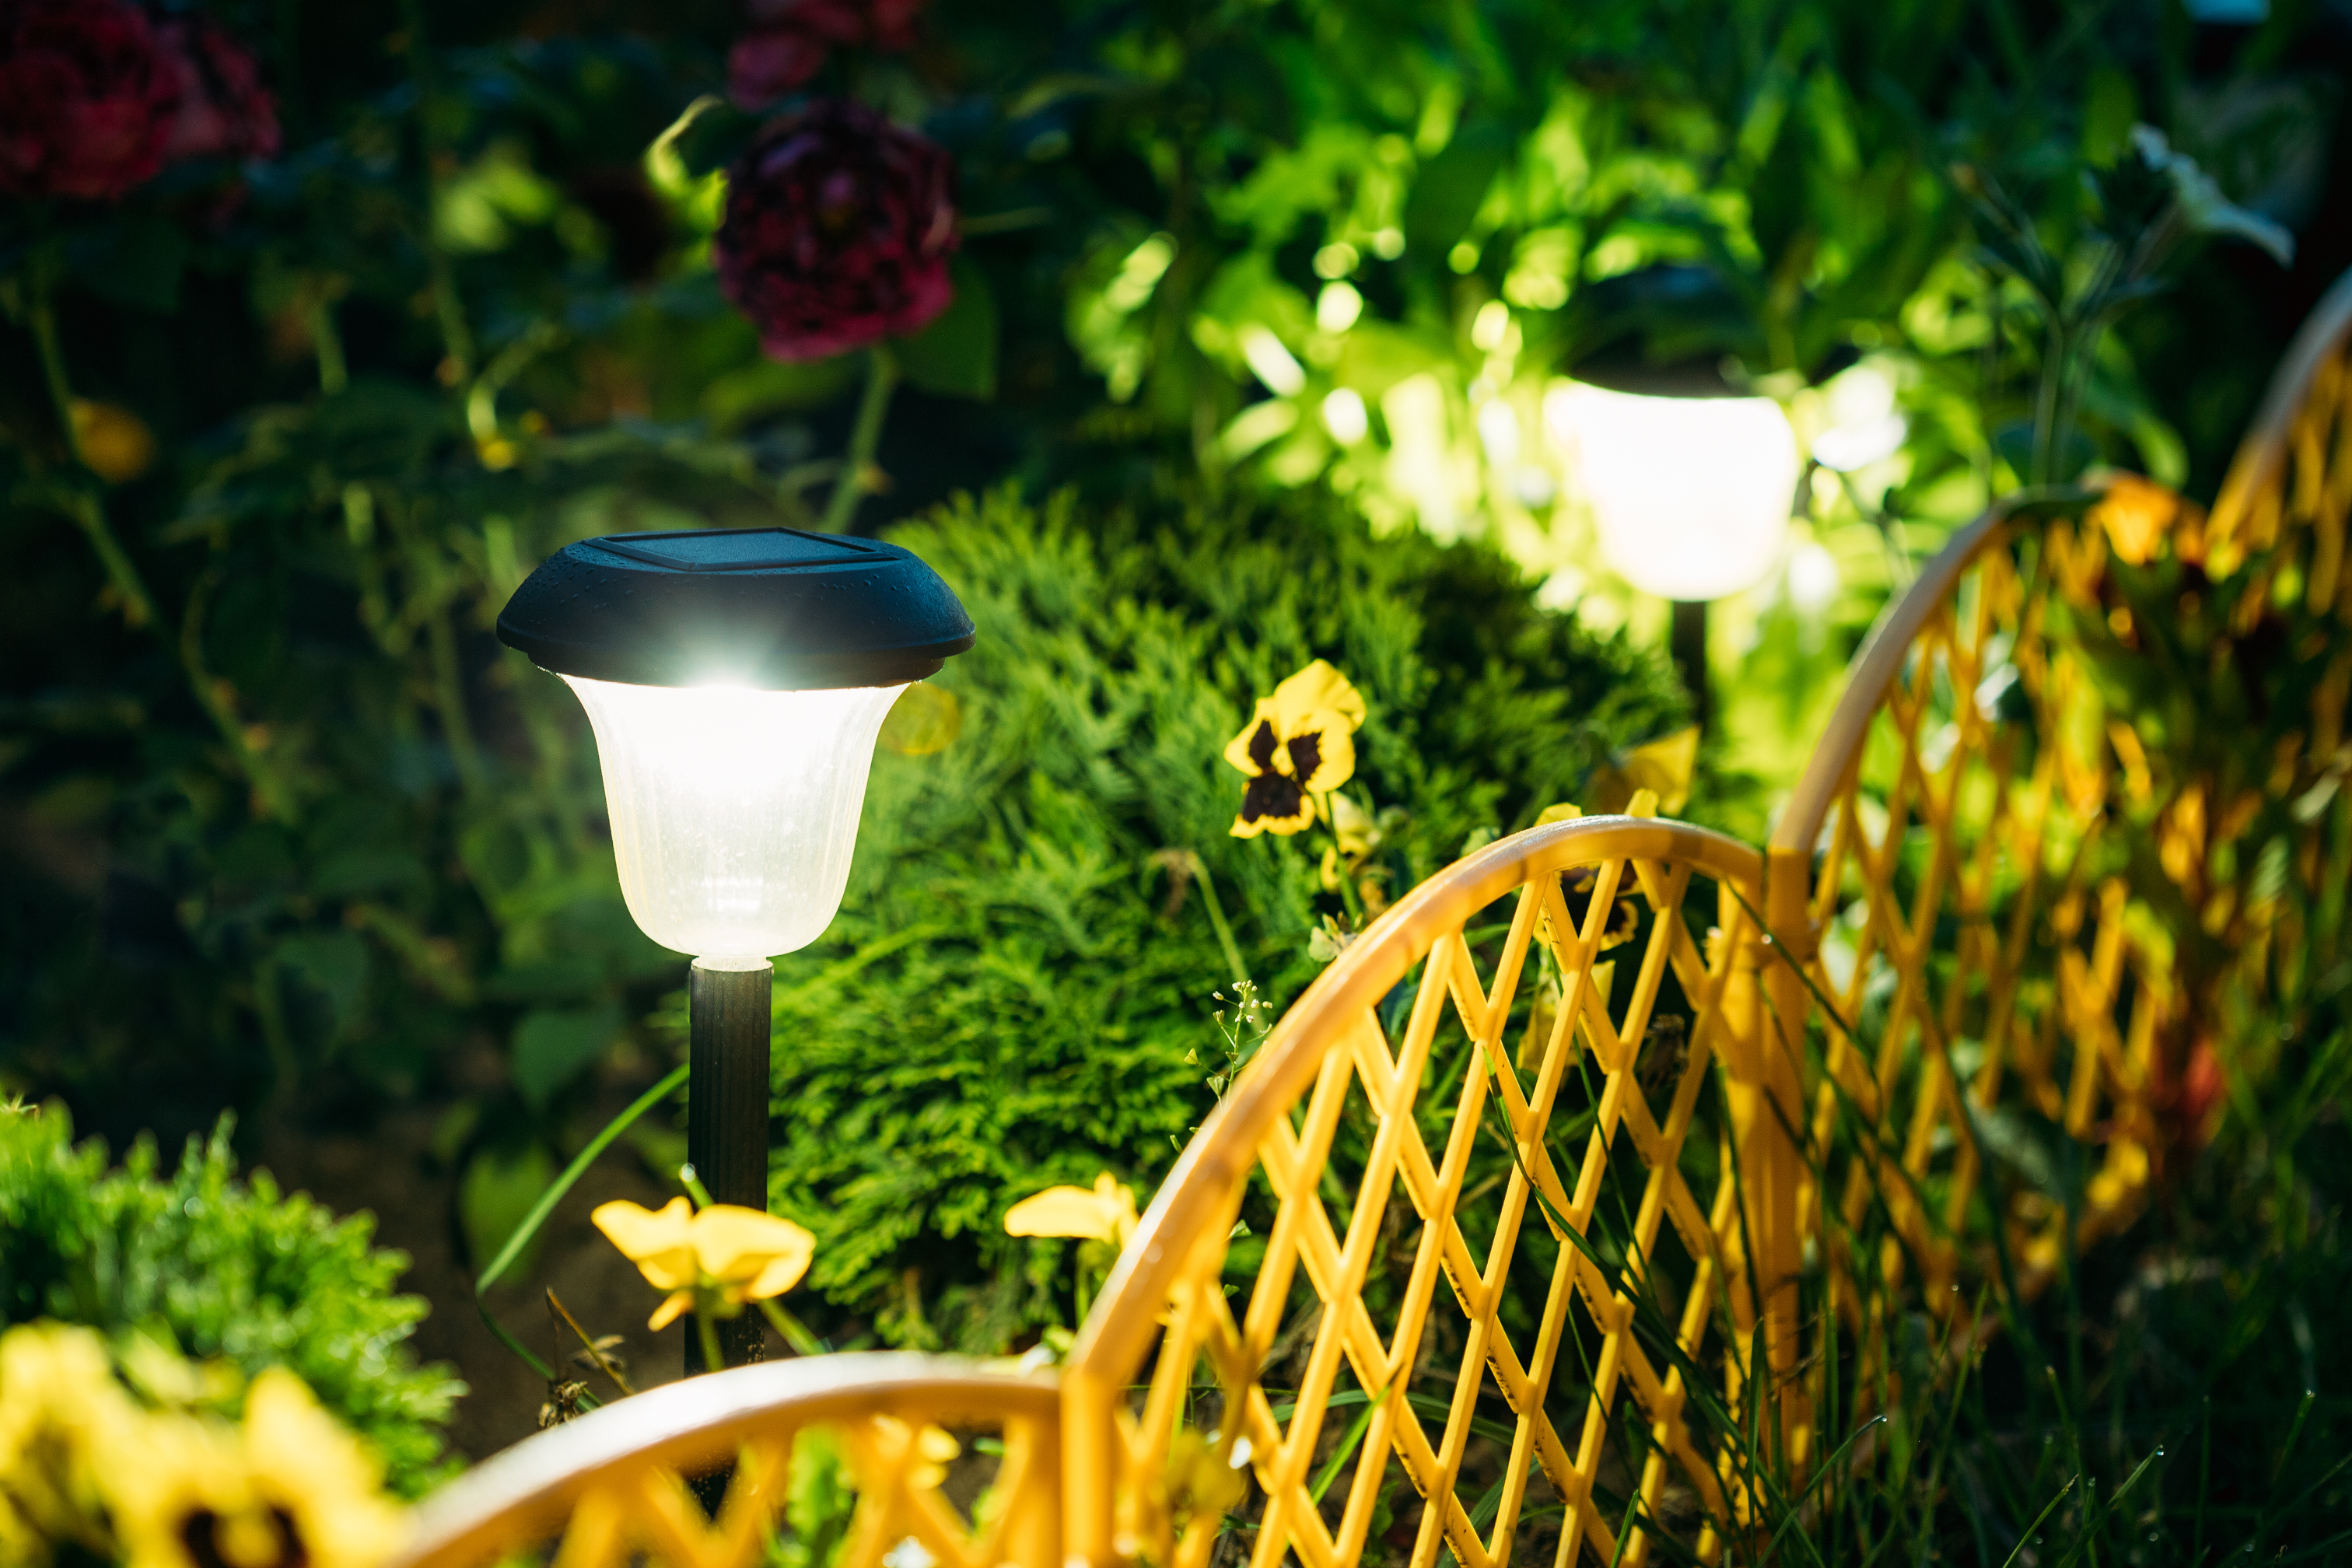 solar-garden-lights-diy-haultail